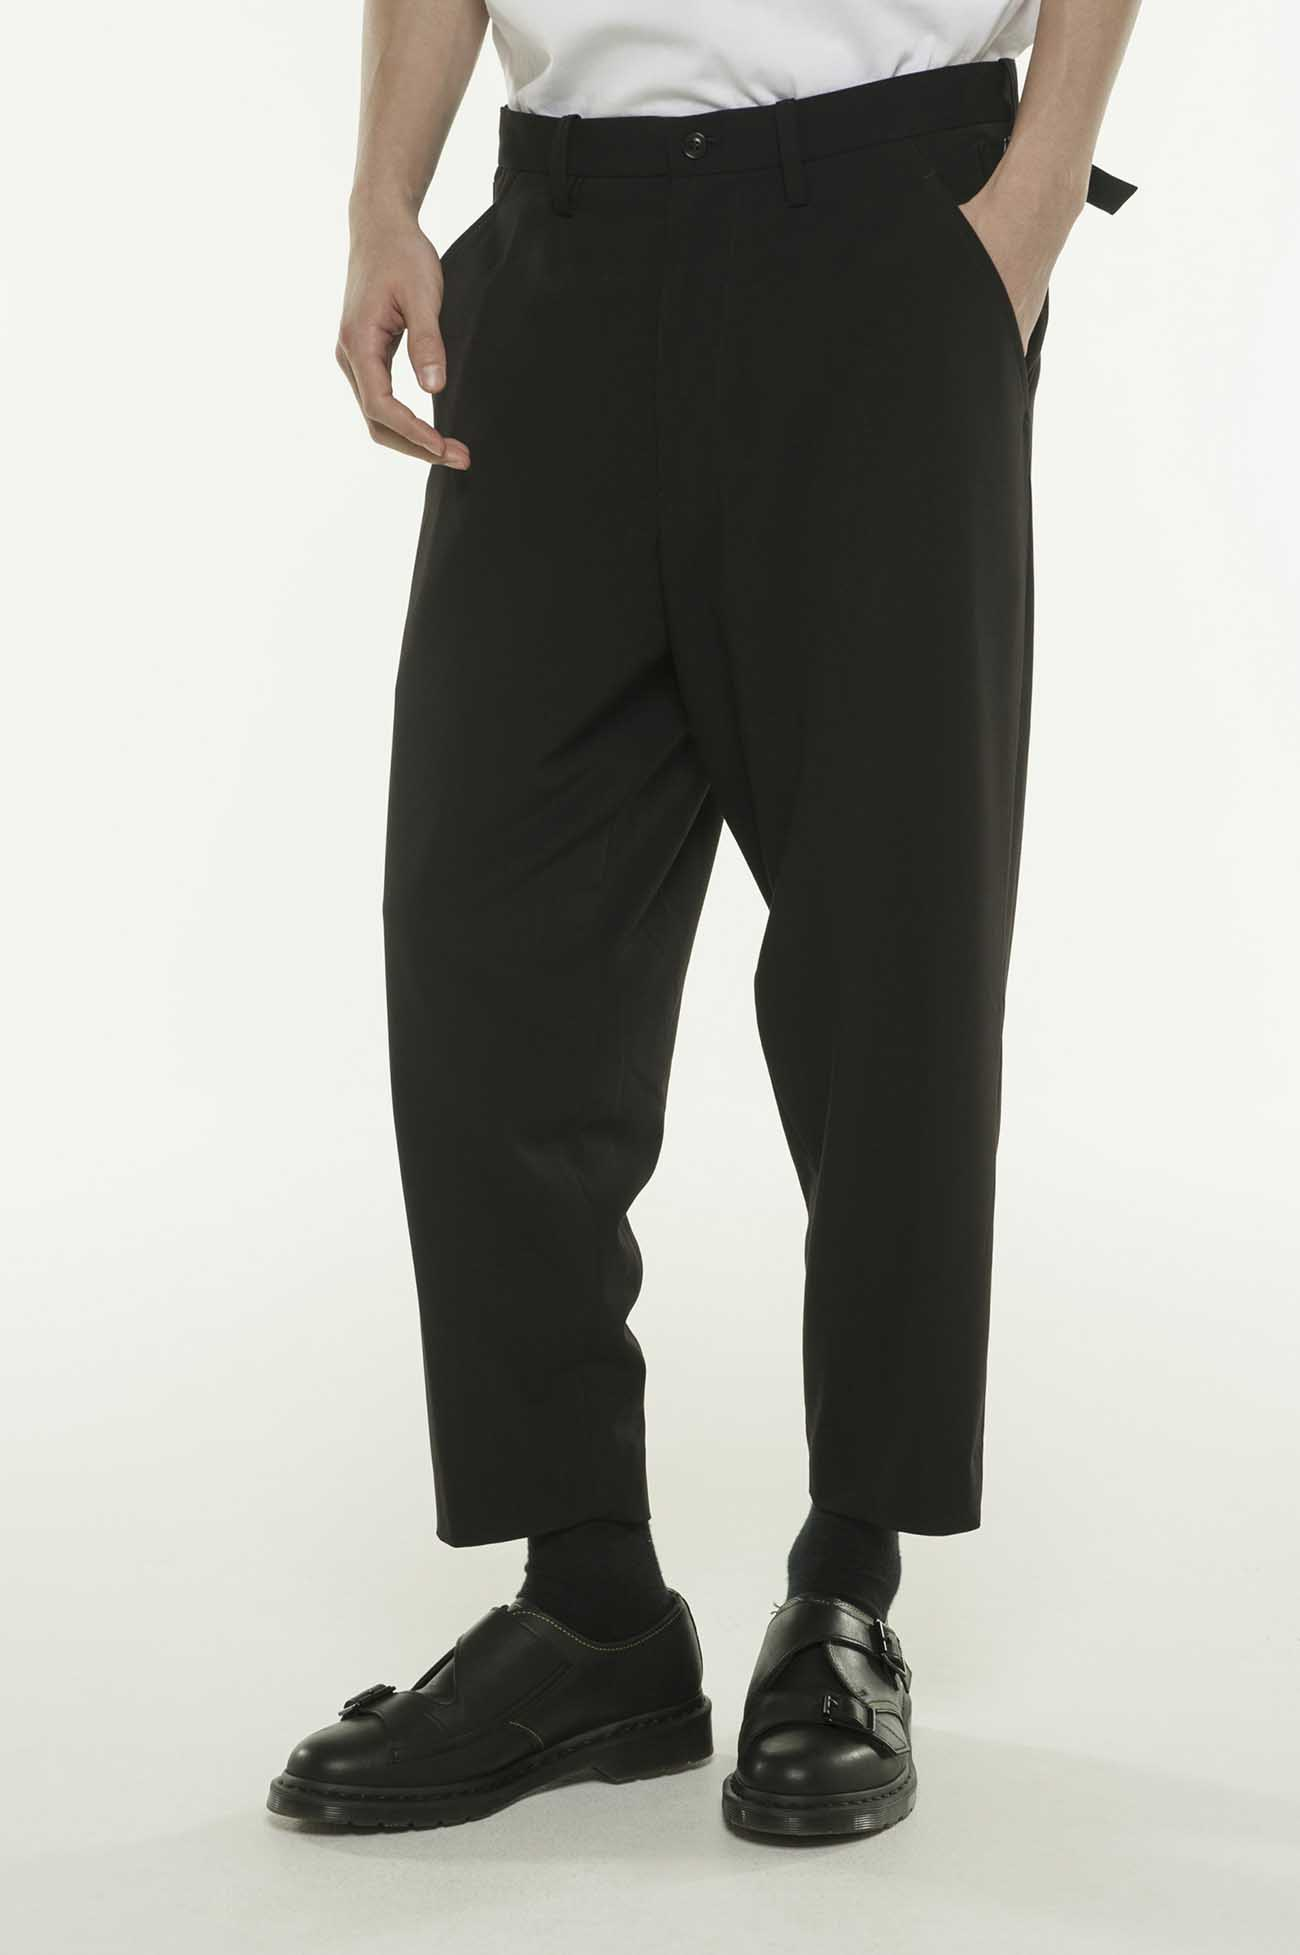 Pe/Rayon Gabardine Stretc Tapered Waist Adjustment Pants